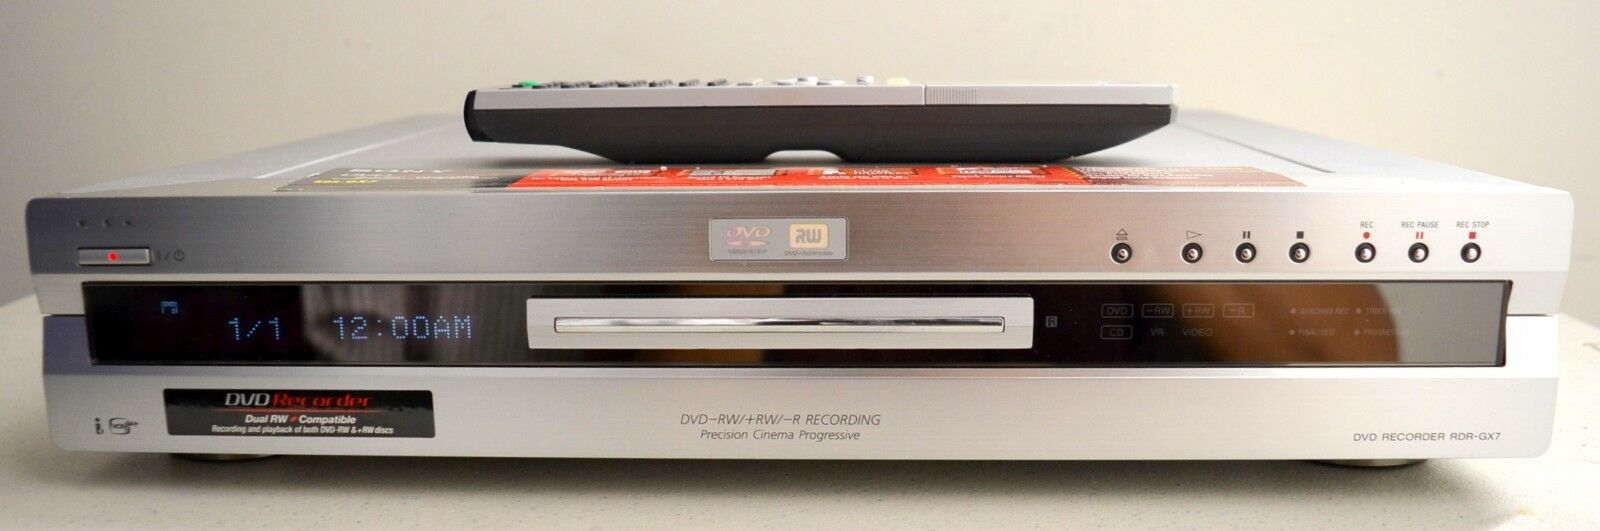 SONY RDR-GX7 DVD Recorder (Silver) - Made in Japan